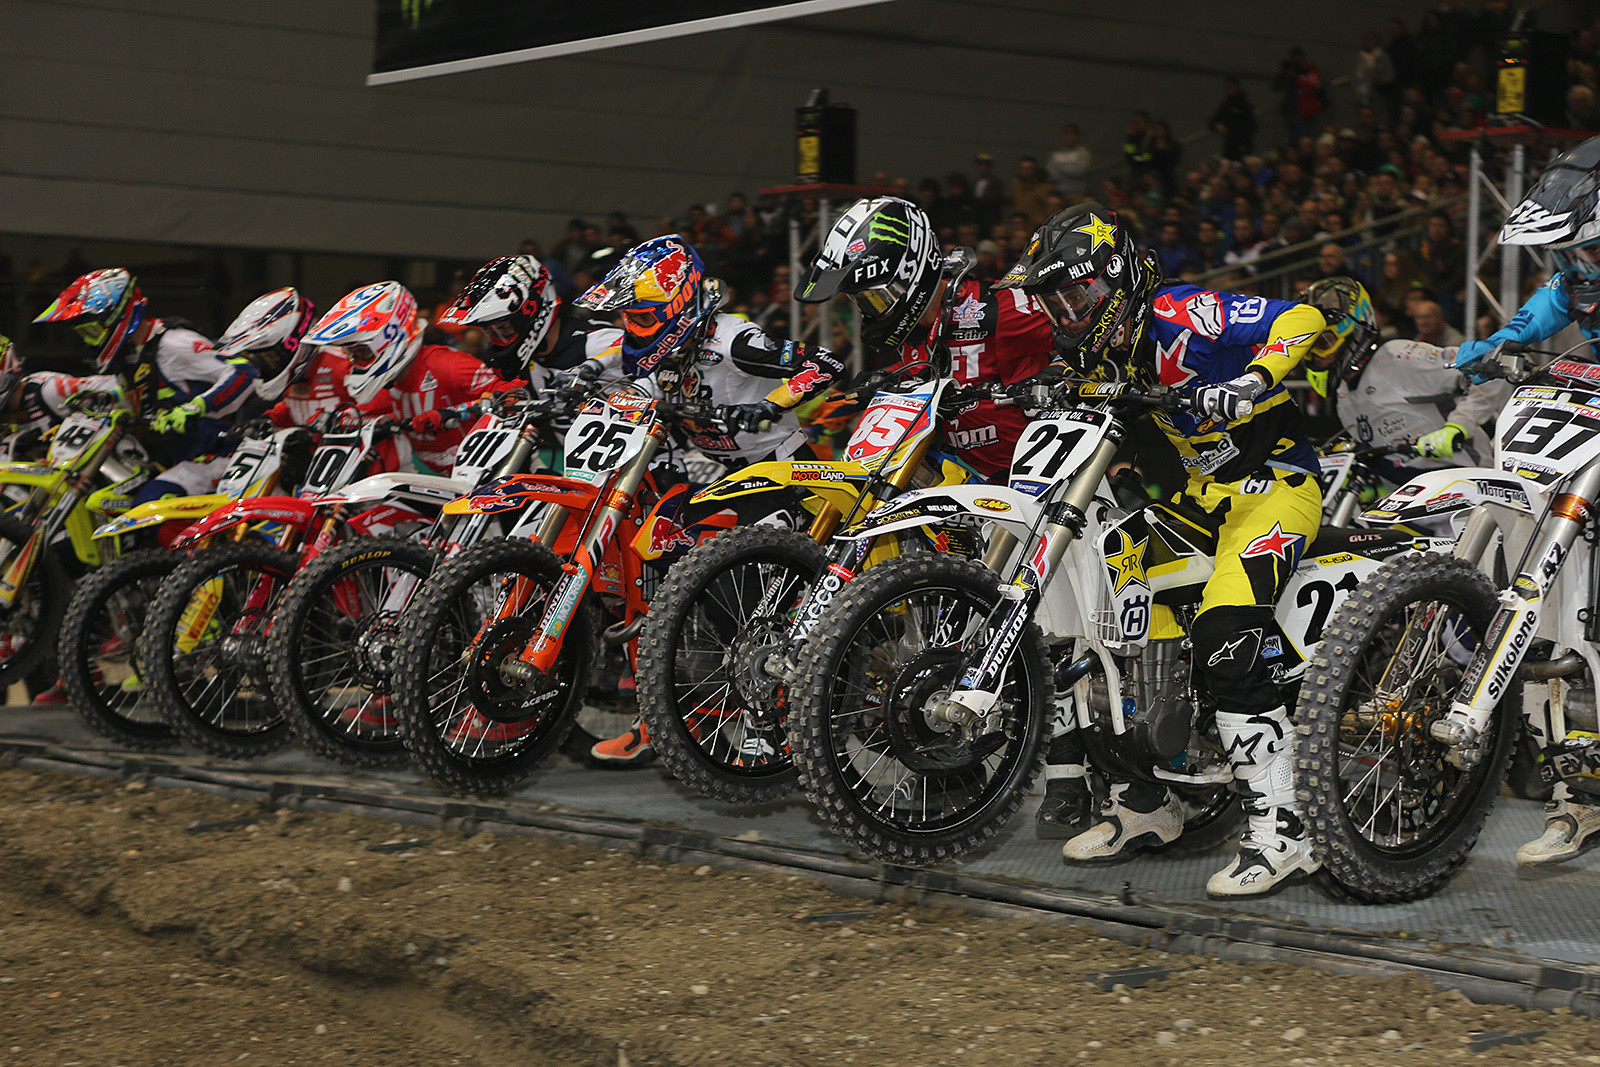 When the gate dropped for the main event, Jason Anderson jumped out to the early lead.